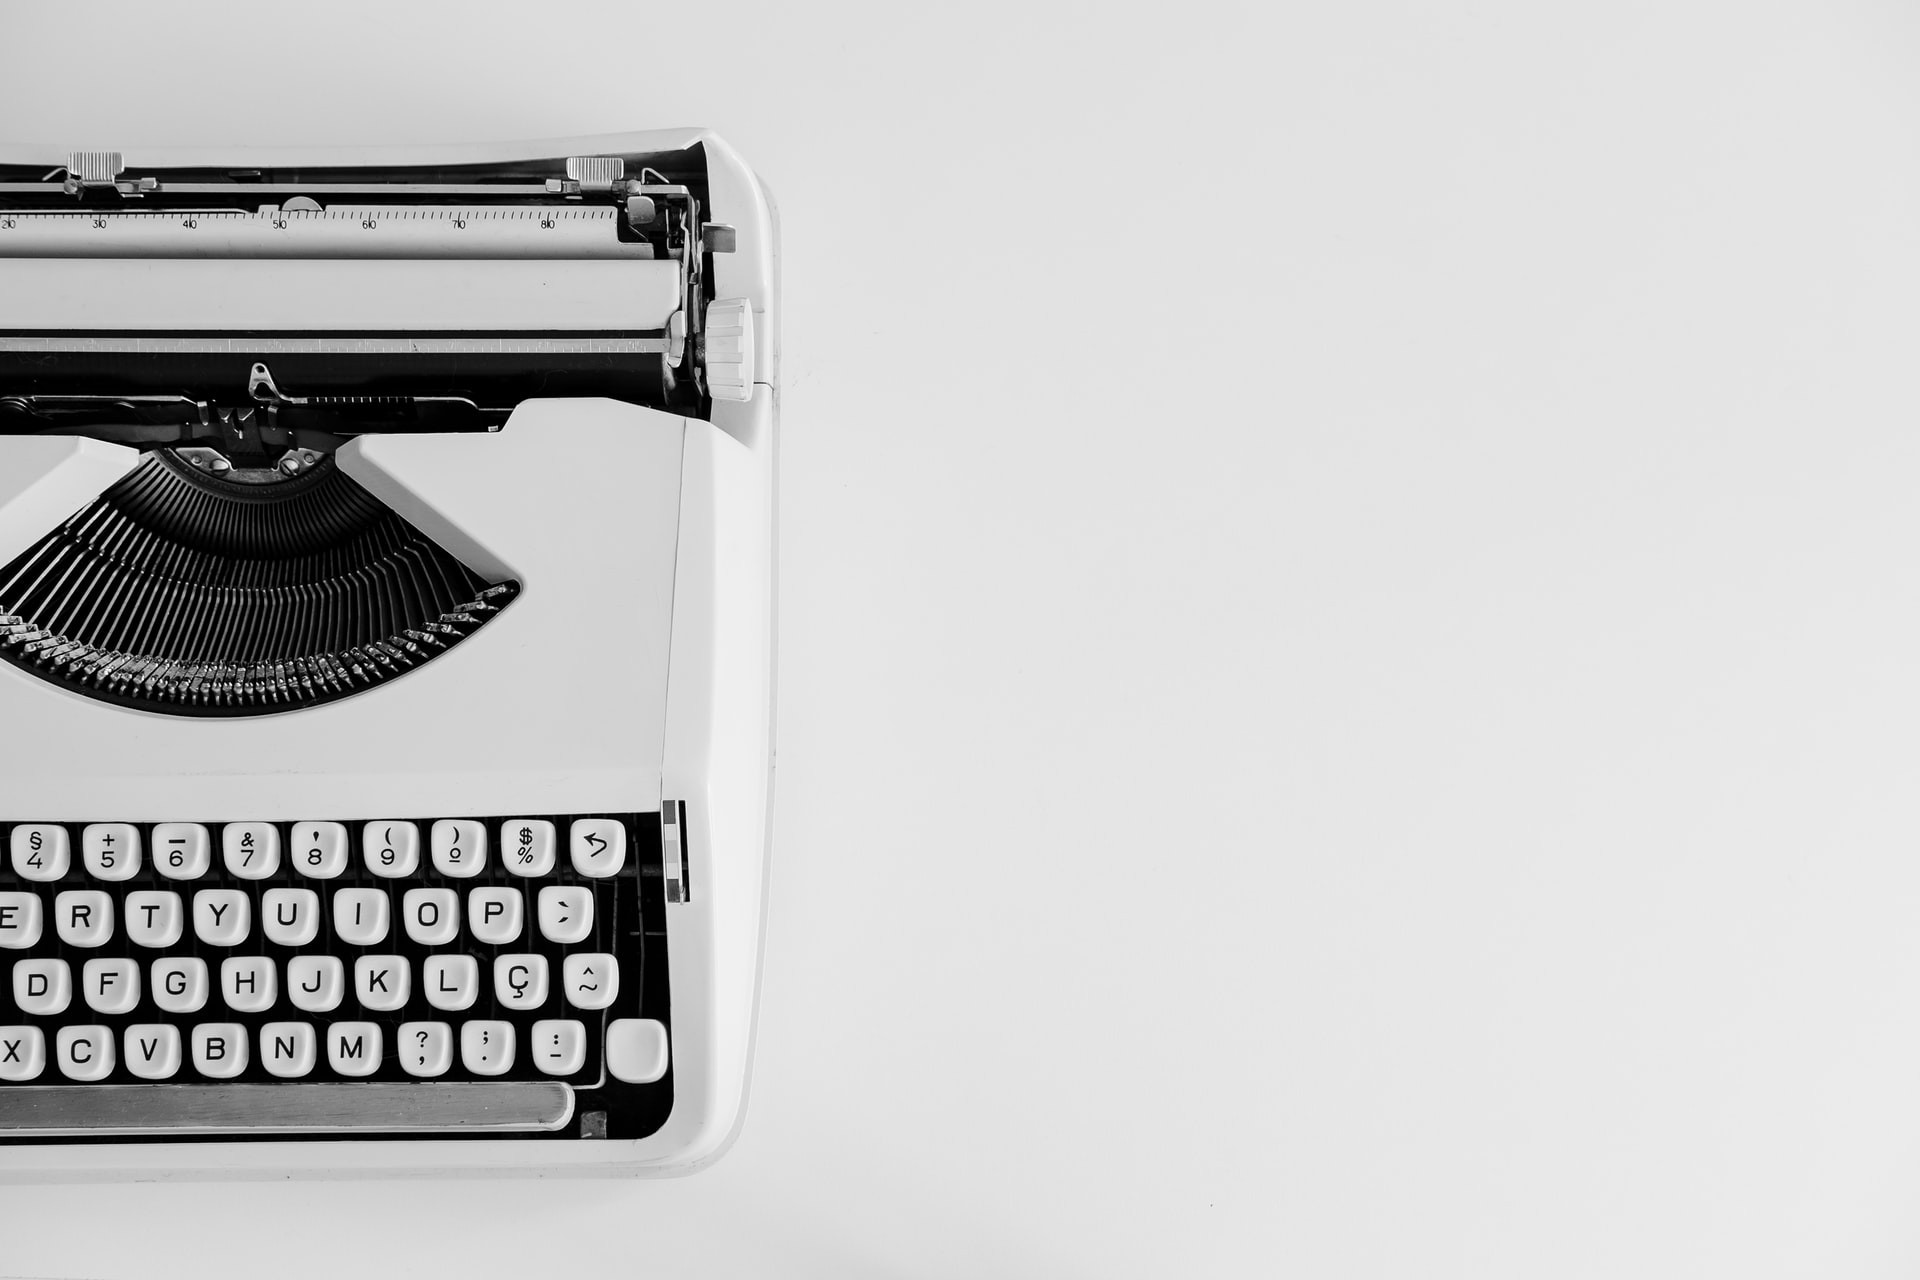 Black and white photograph of a typewriter offset to the left of the image.